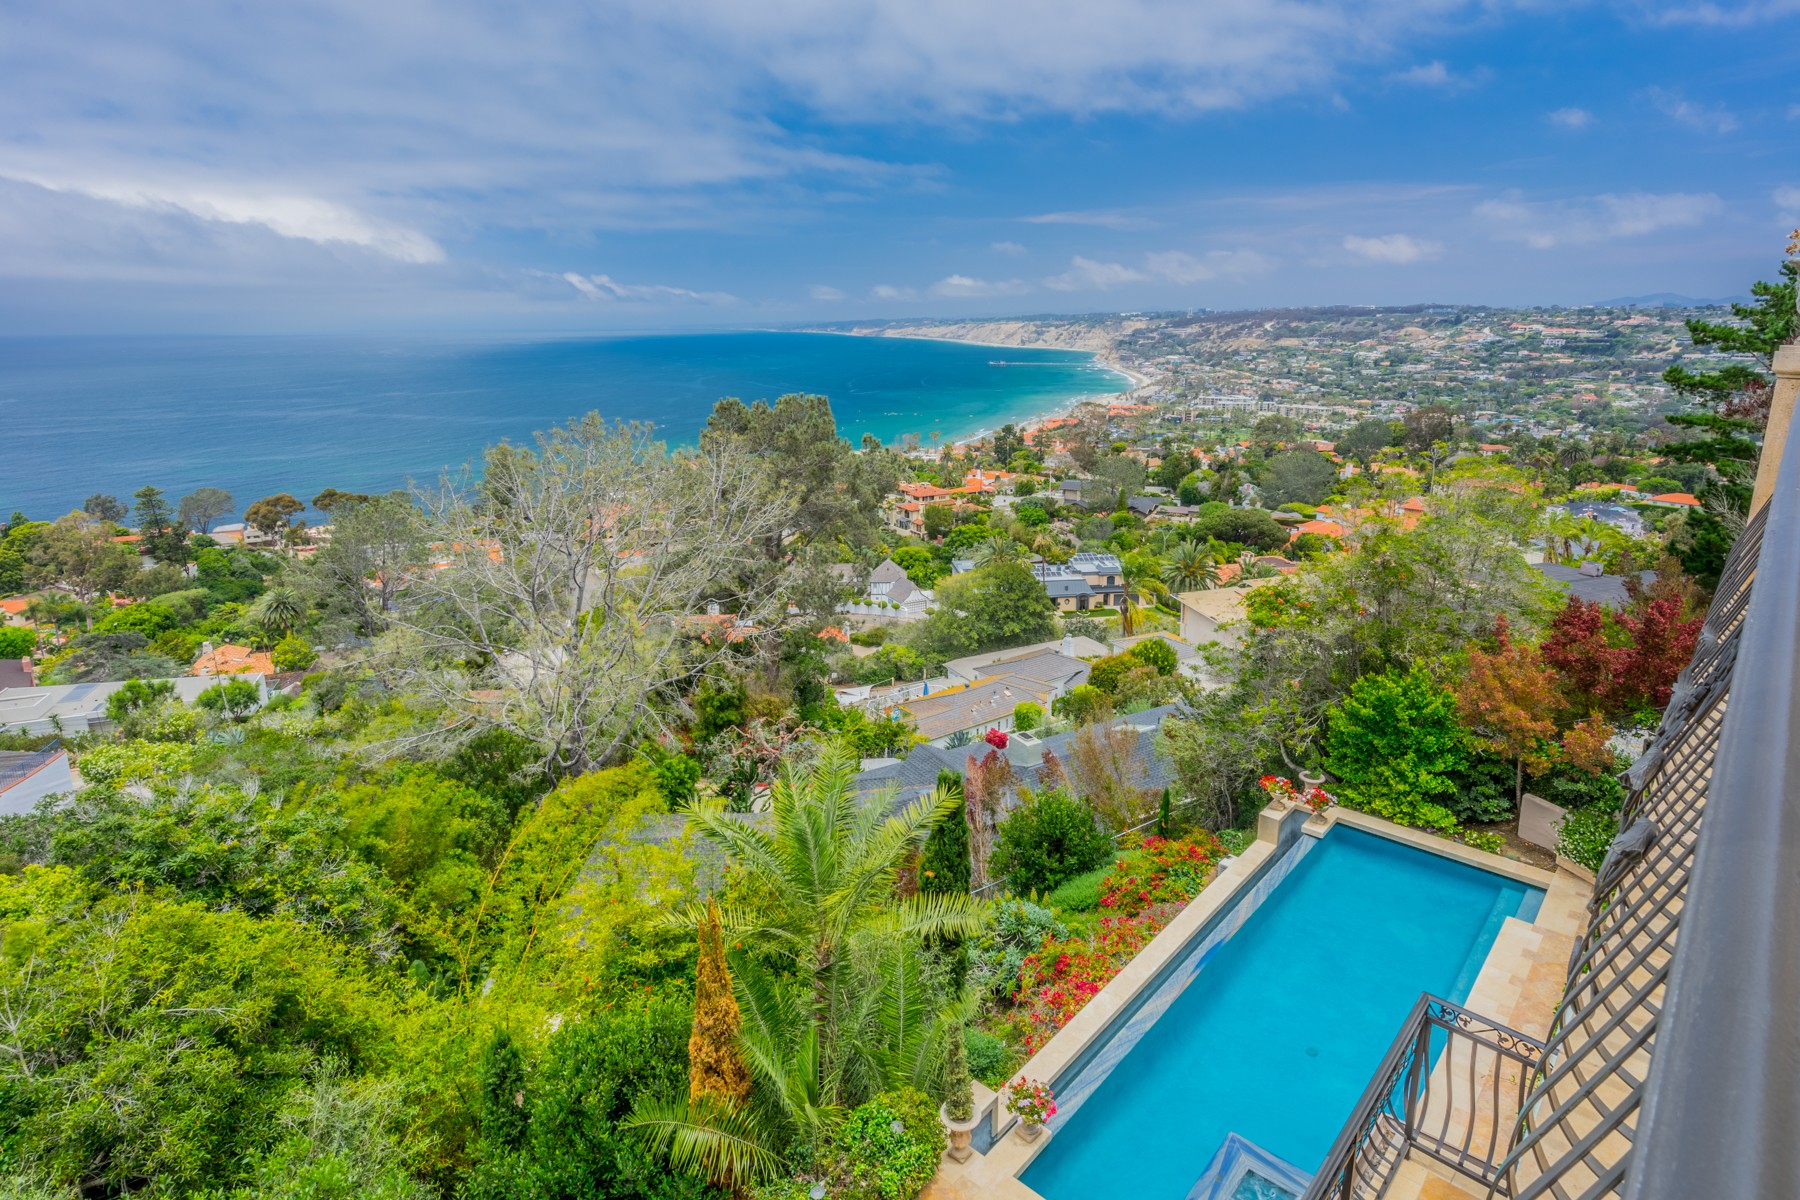 Additional photo for property listing at 1702 Valdes Dr  La Jolla, California 92037 Estados Unidos